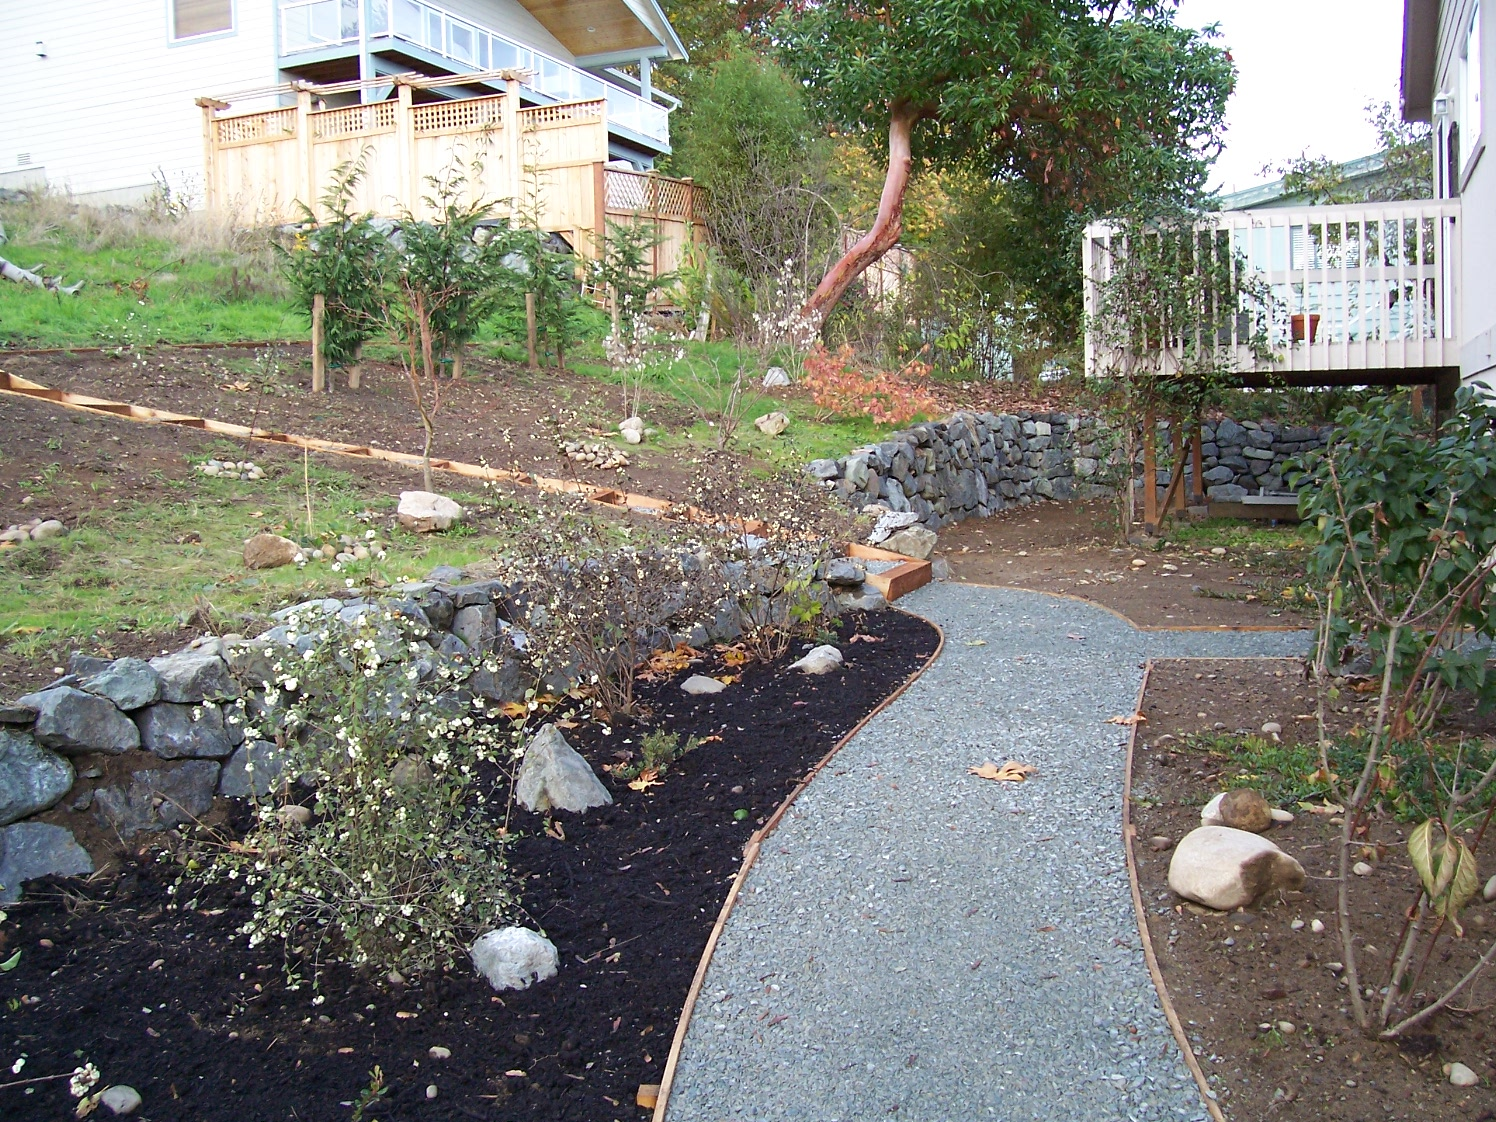 Amended soil(left) and non-amended soil(right) along a walkway. Courtesy of Innovative Landscape Technology.